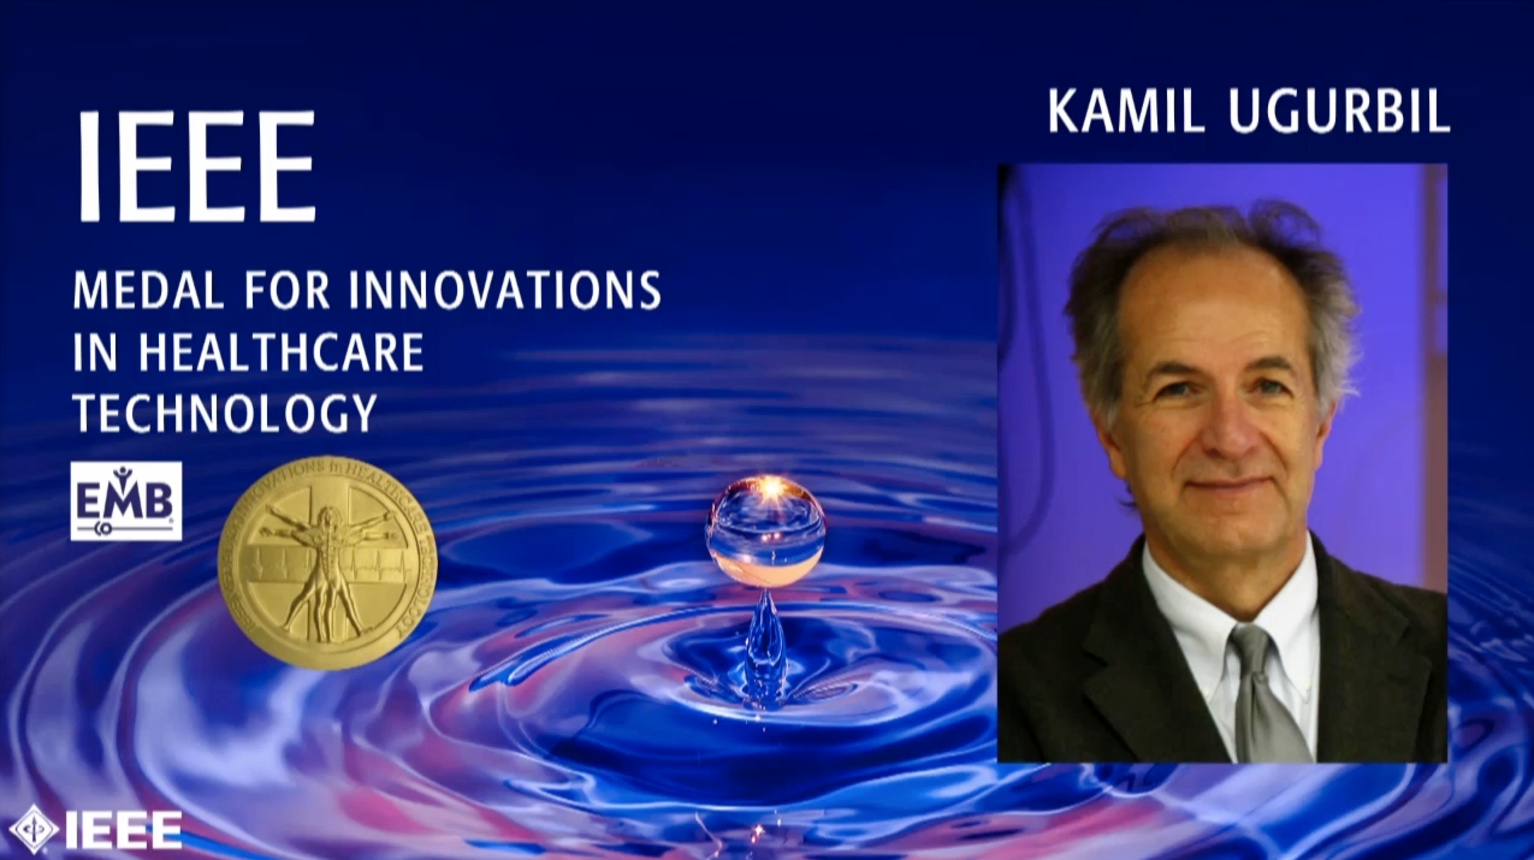 Kamil Ugurbil - IEEE Medal for Innovations in Healthcare Technology, 2019 IEEE Honors Ceremony